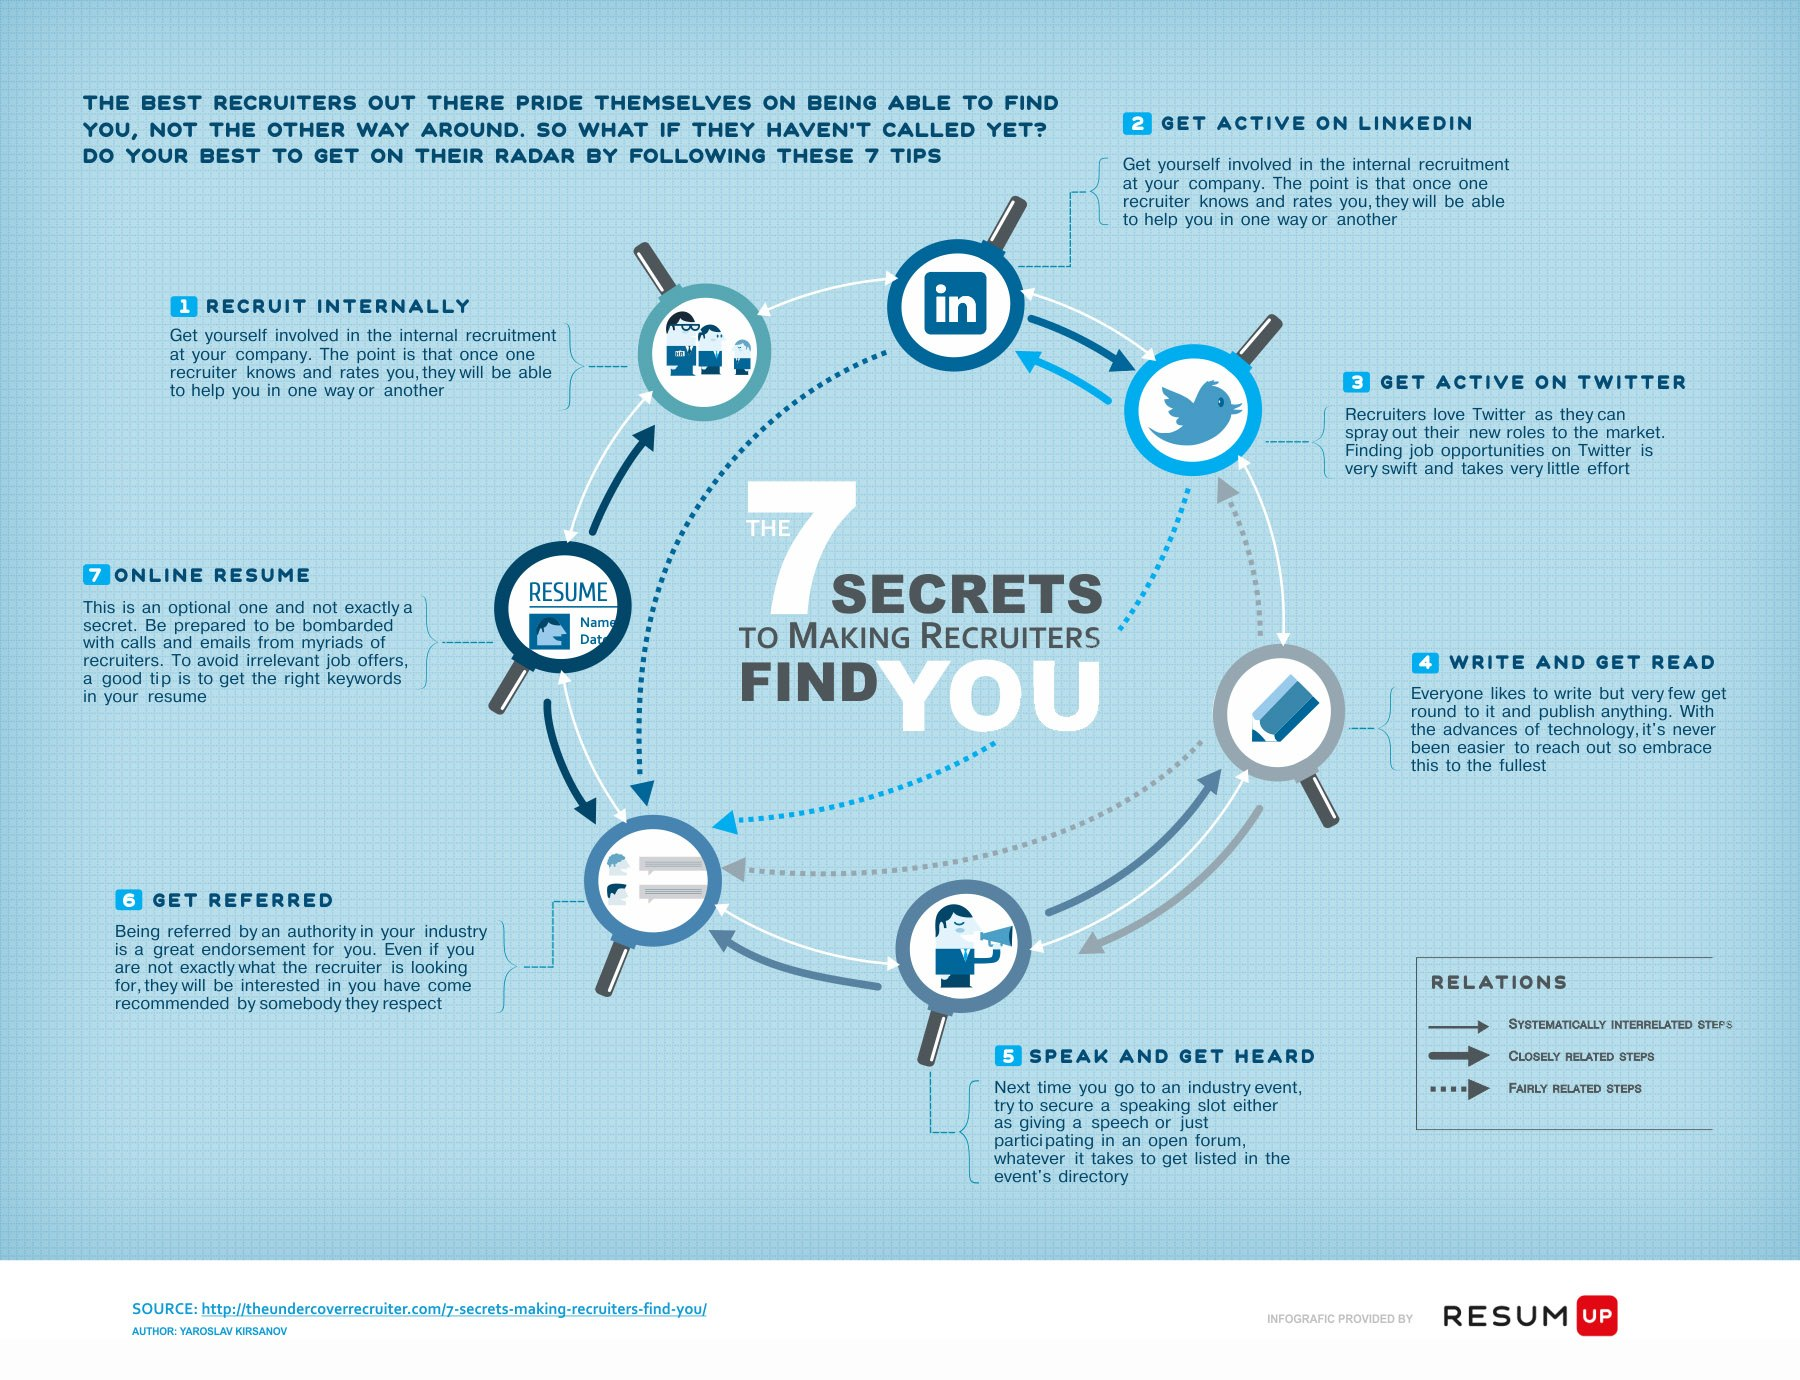 7 Secrets To Making Recruiters Find You [Infographic]